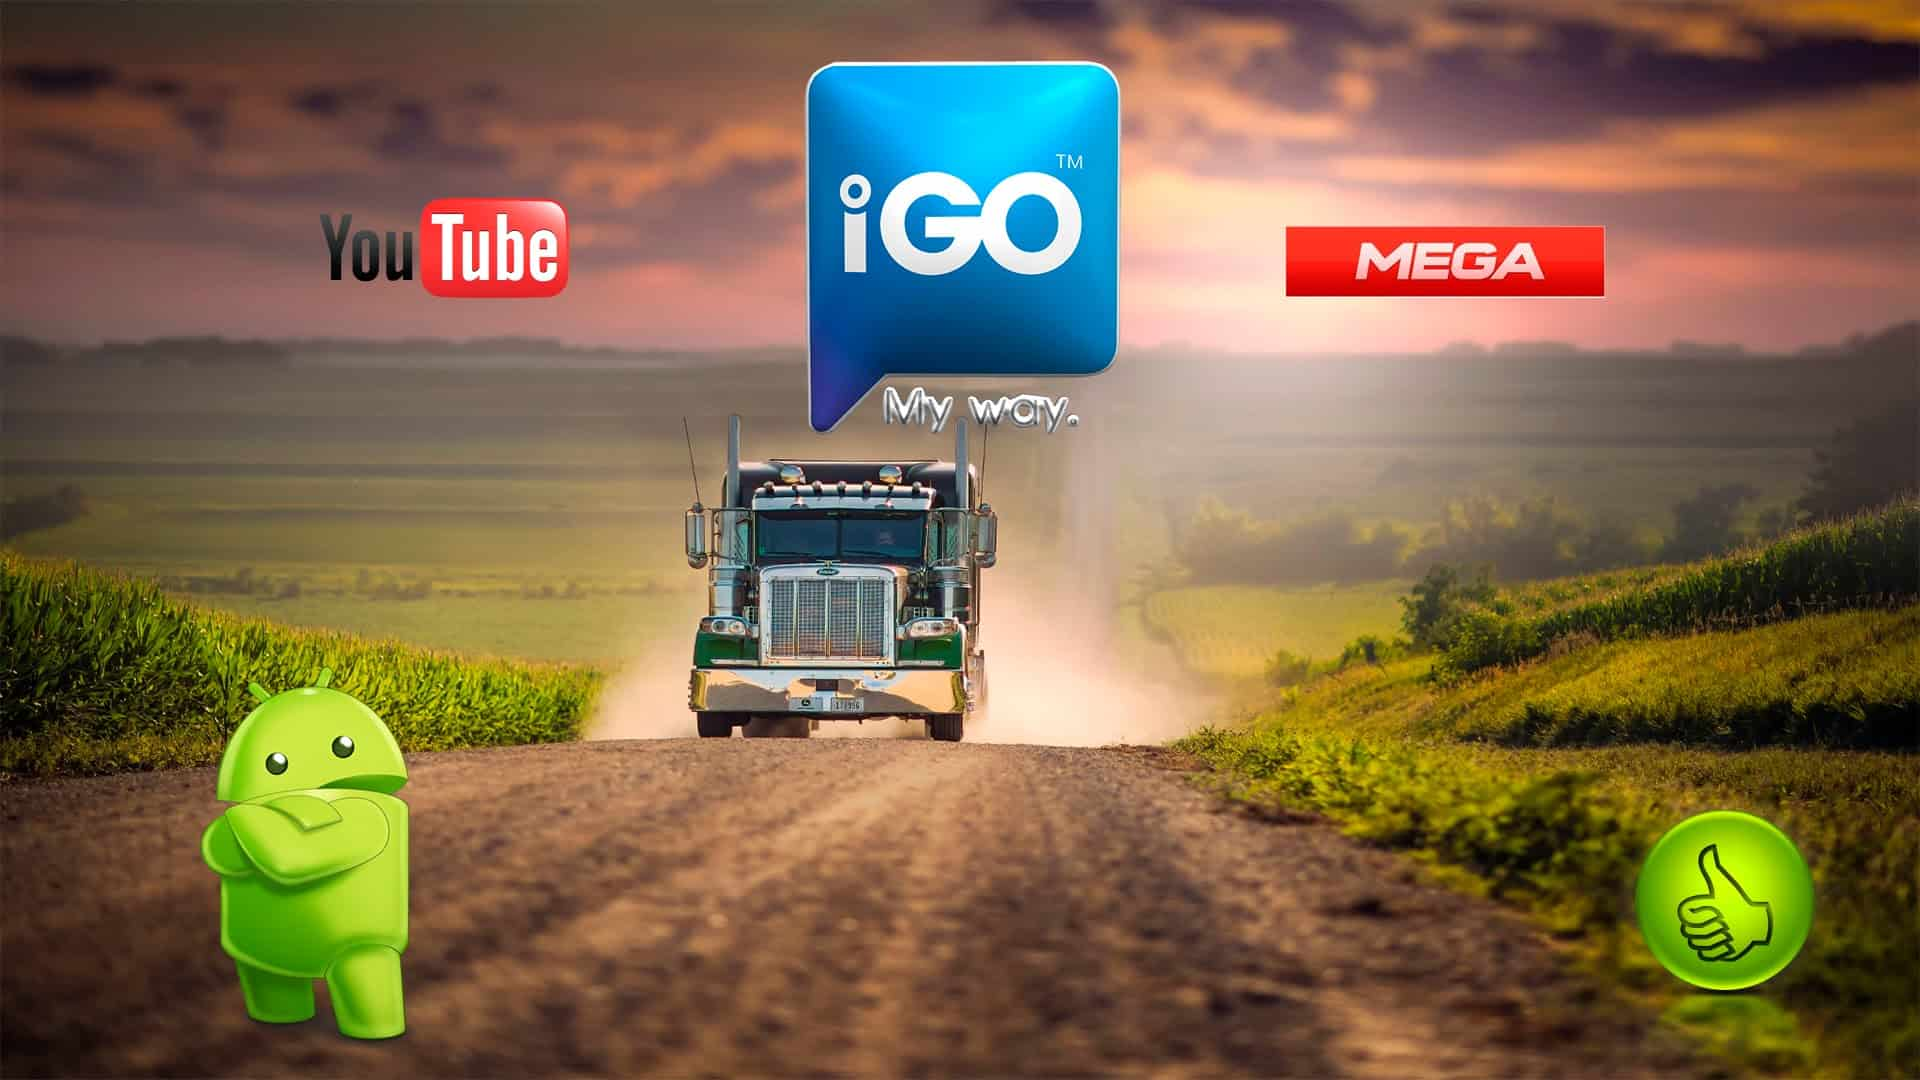 igo primo android 2018 download free